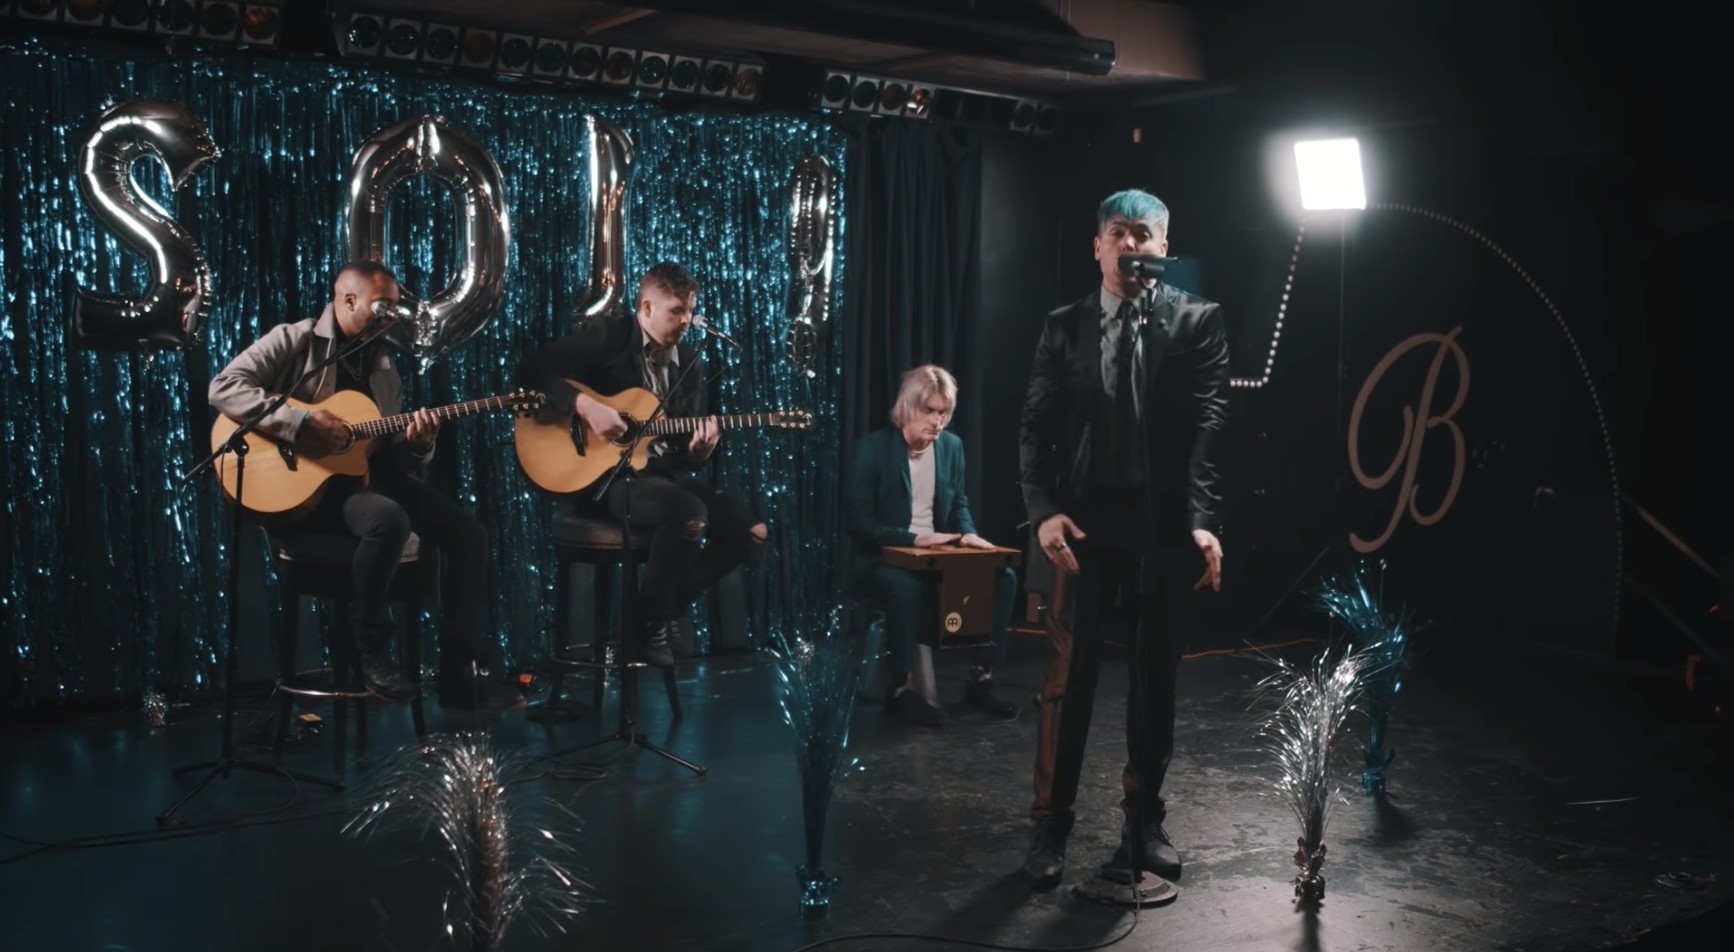 Watch Set It Off Give 'dancing With The Devil' The Acoustic Treatment